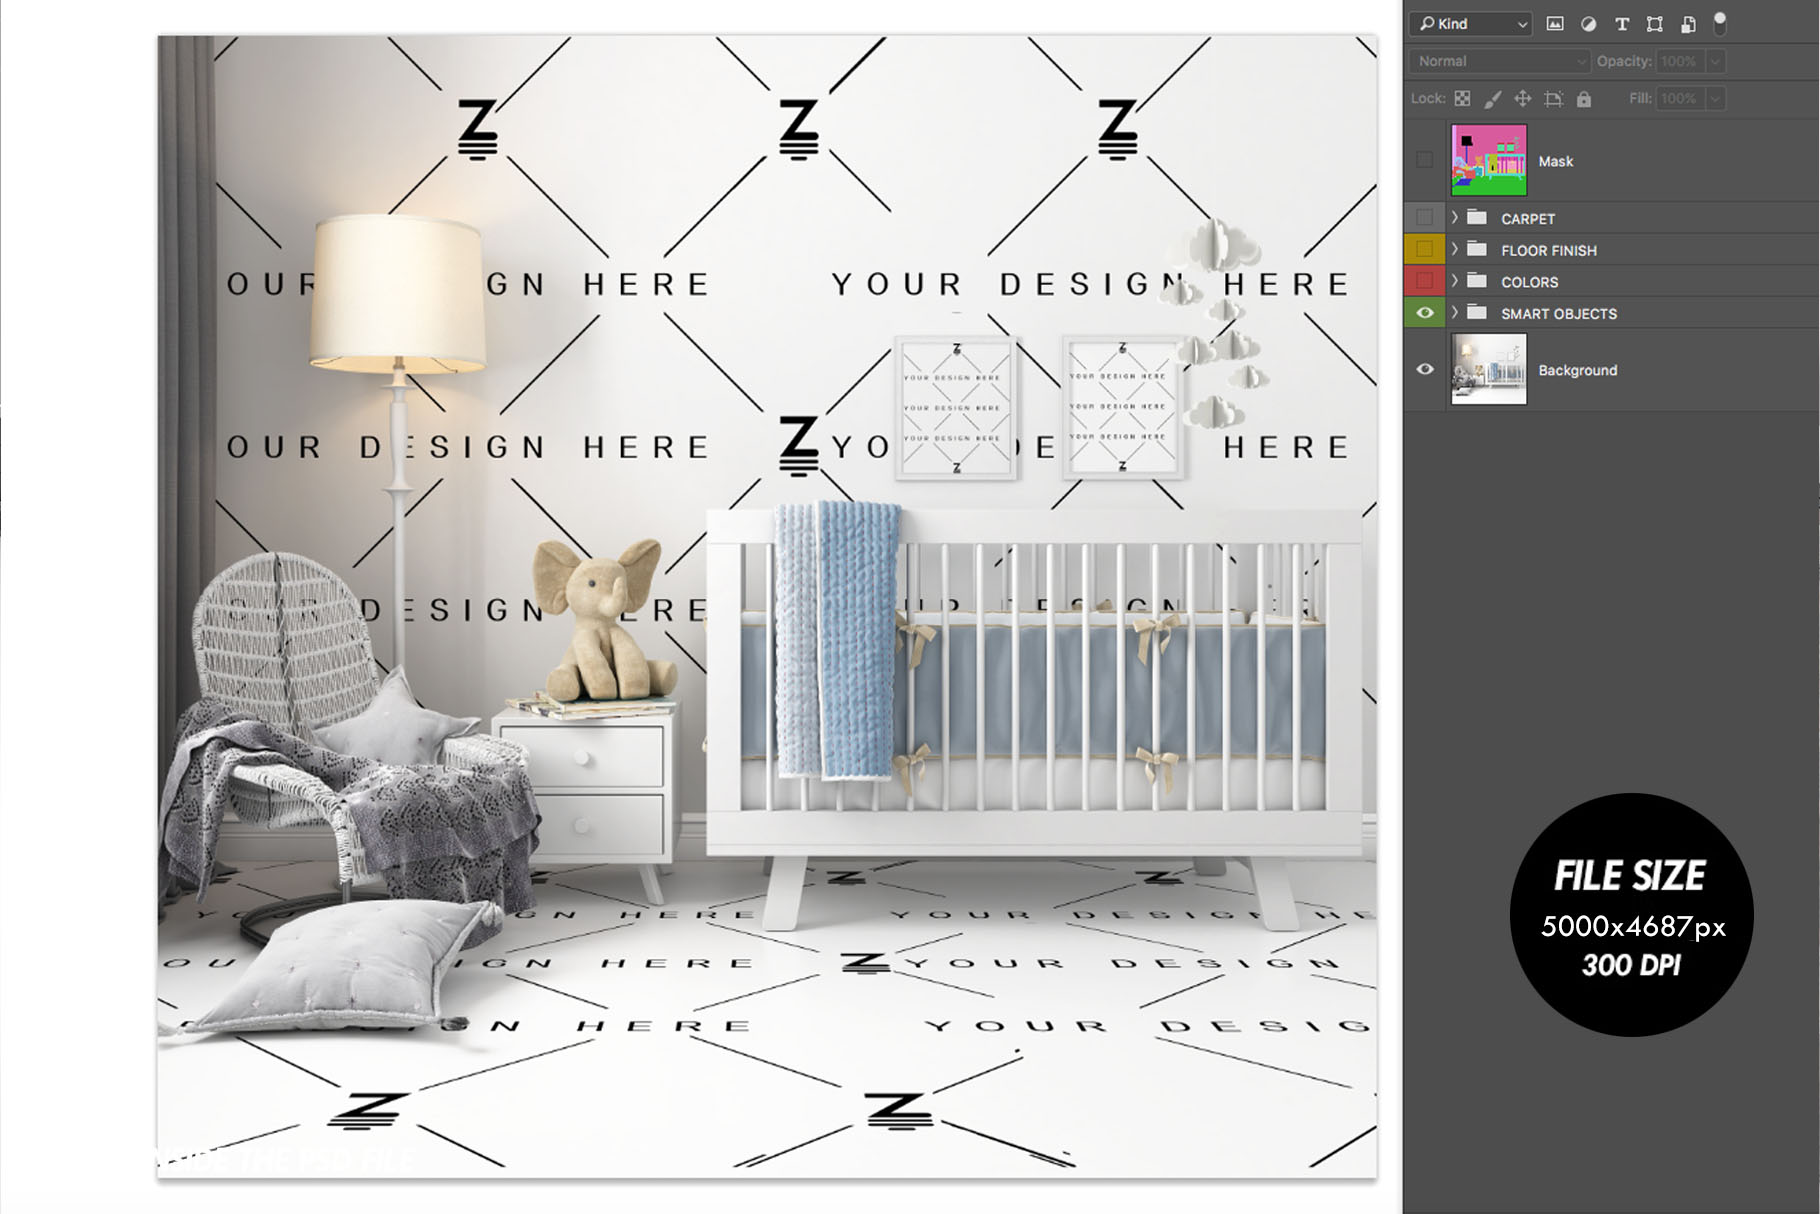 Wallpaper, floor, carpet and frame Mockup Baby Bedroom SM60 example image 4